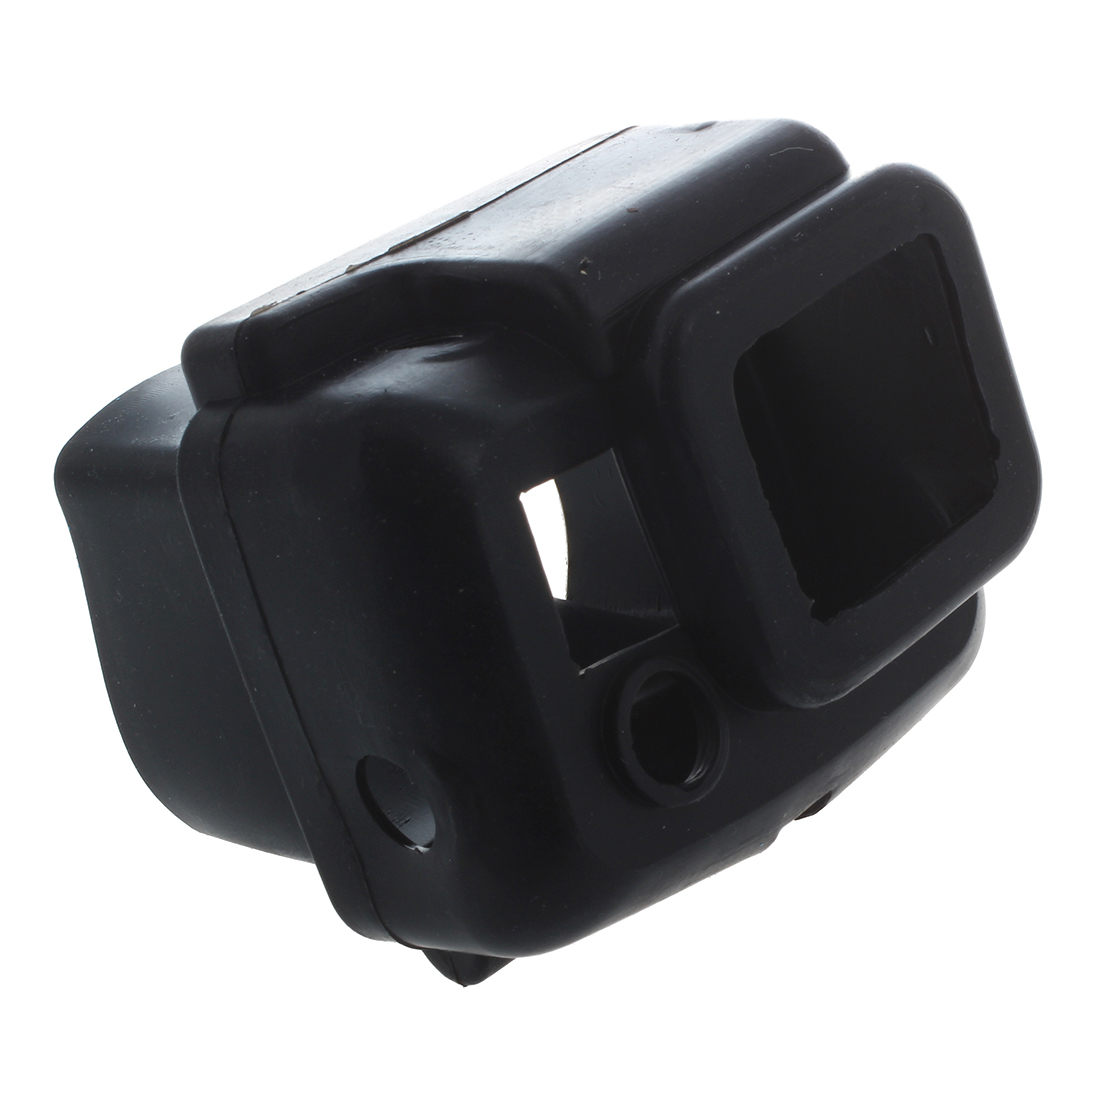 Housse etui protection silicone noir pour camescope gopro for Housse camescope